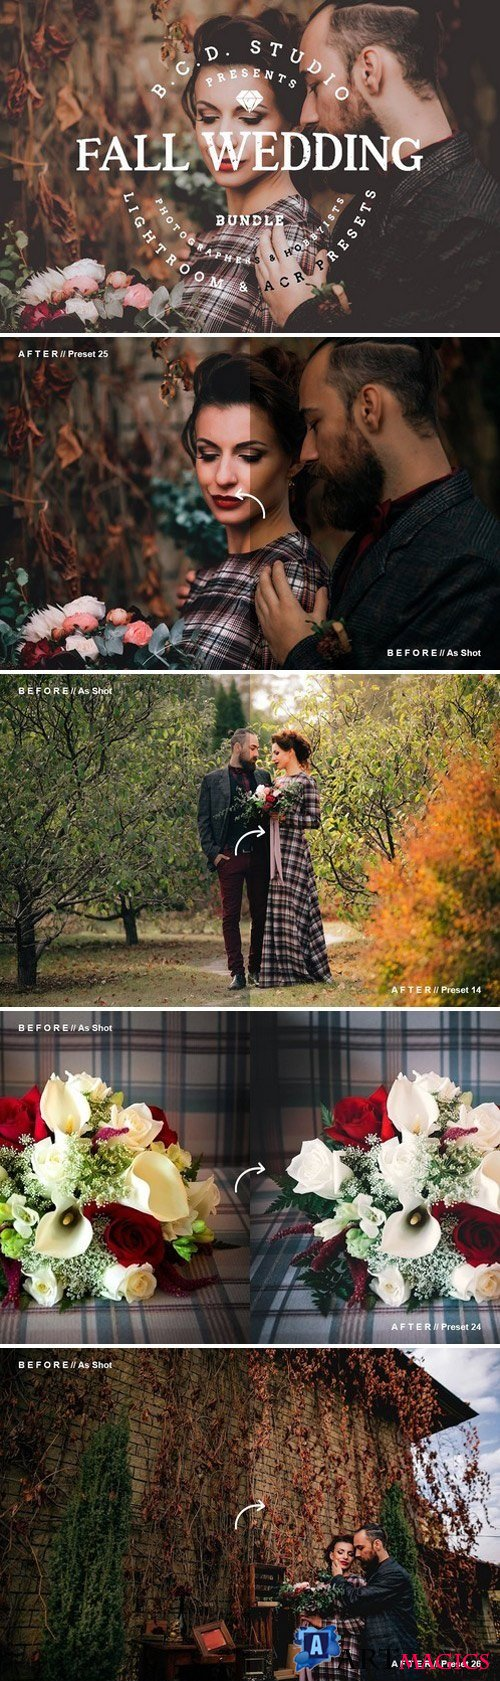 30 Fall Wedding LR & PS Presets 1820011